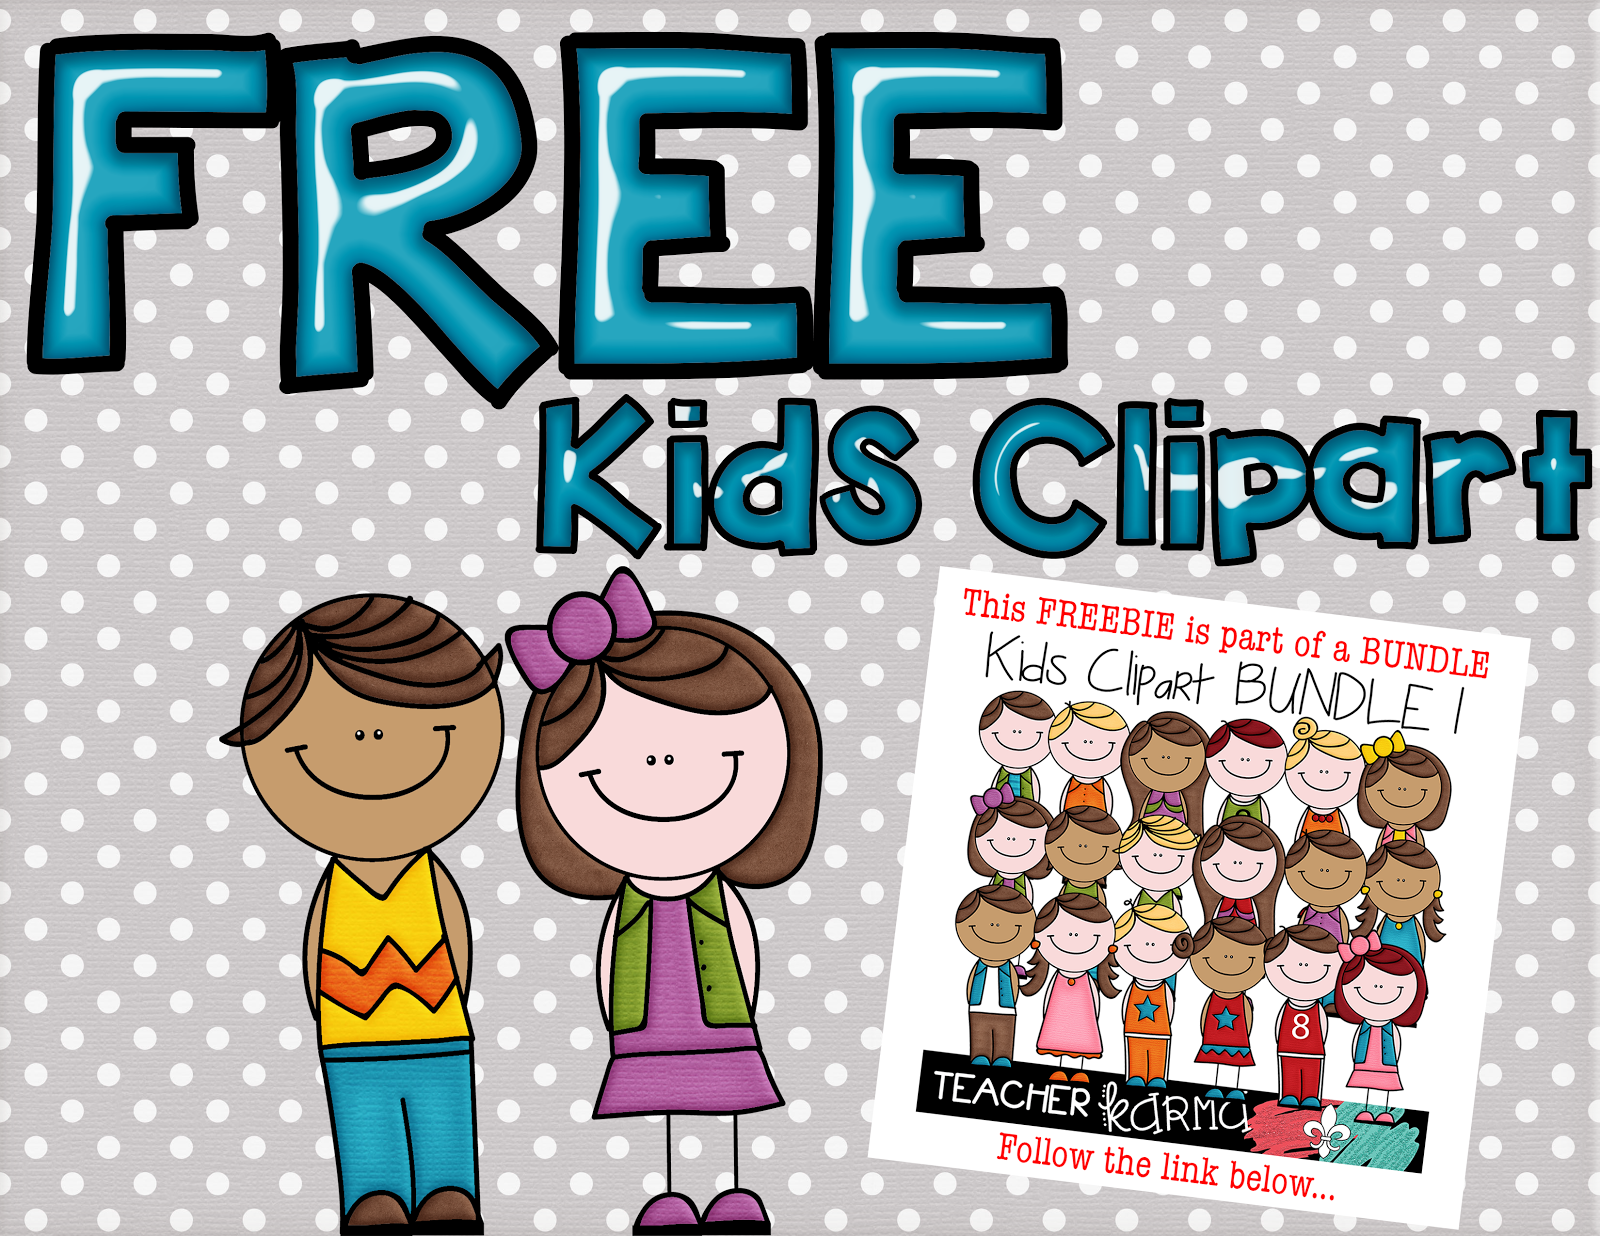 2 FREE Kids: Student Clipart – Teacher KARMA